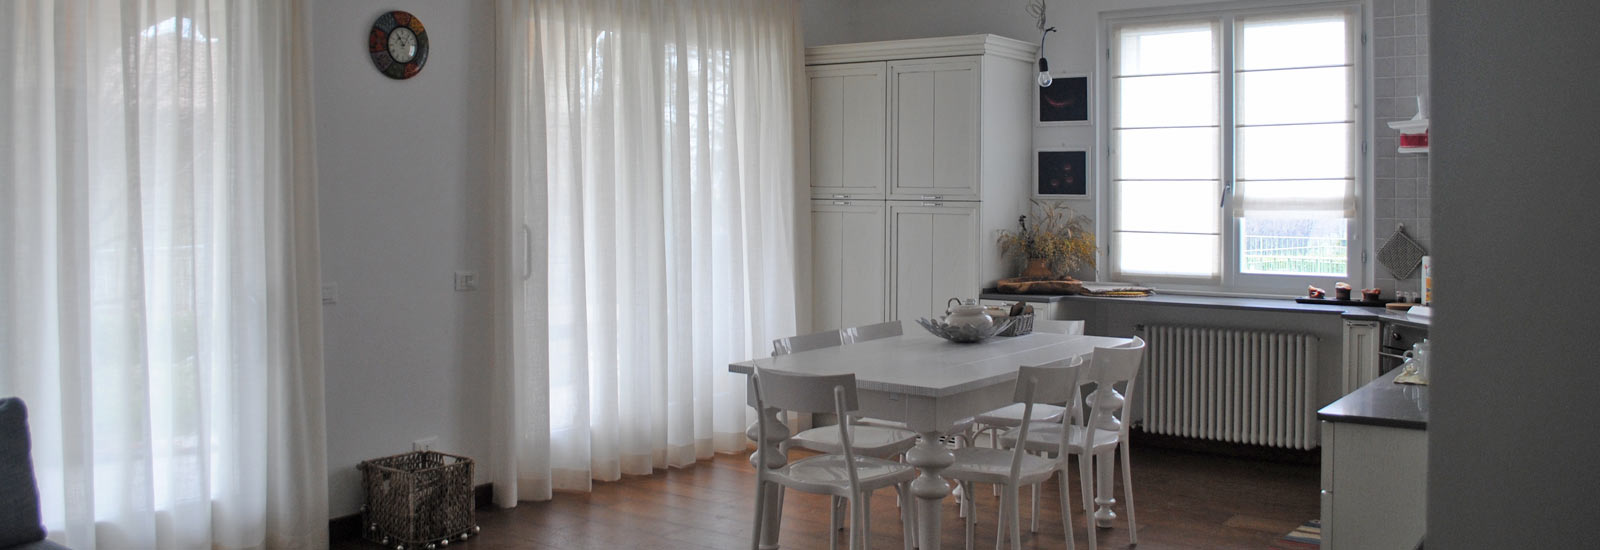 Gathered curtains - Awnings Curtains And Accessories Gathered Curtains